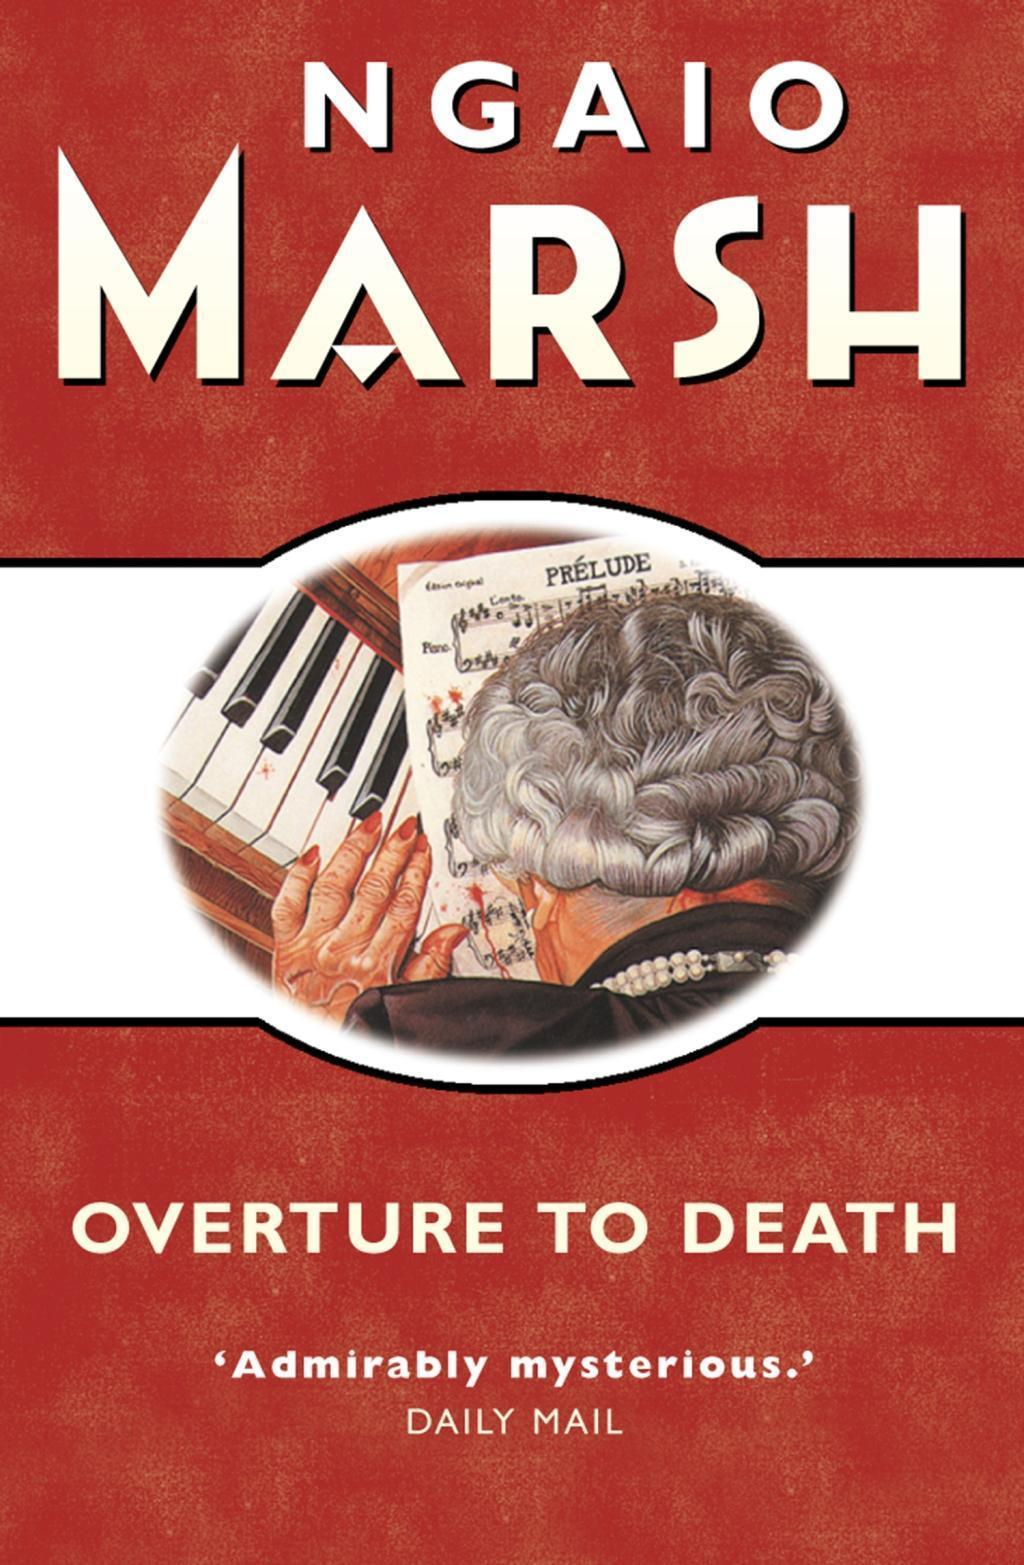 Overture to Death (The Ngaio Marsh Collection)